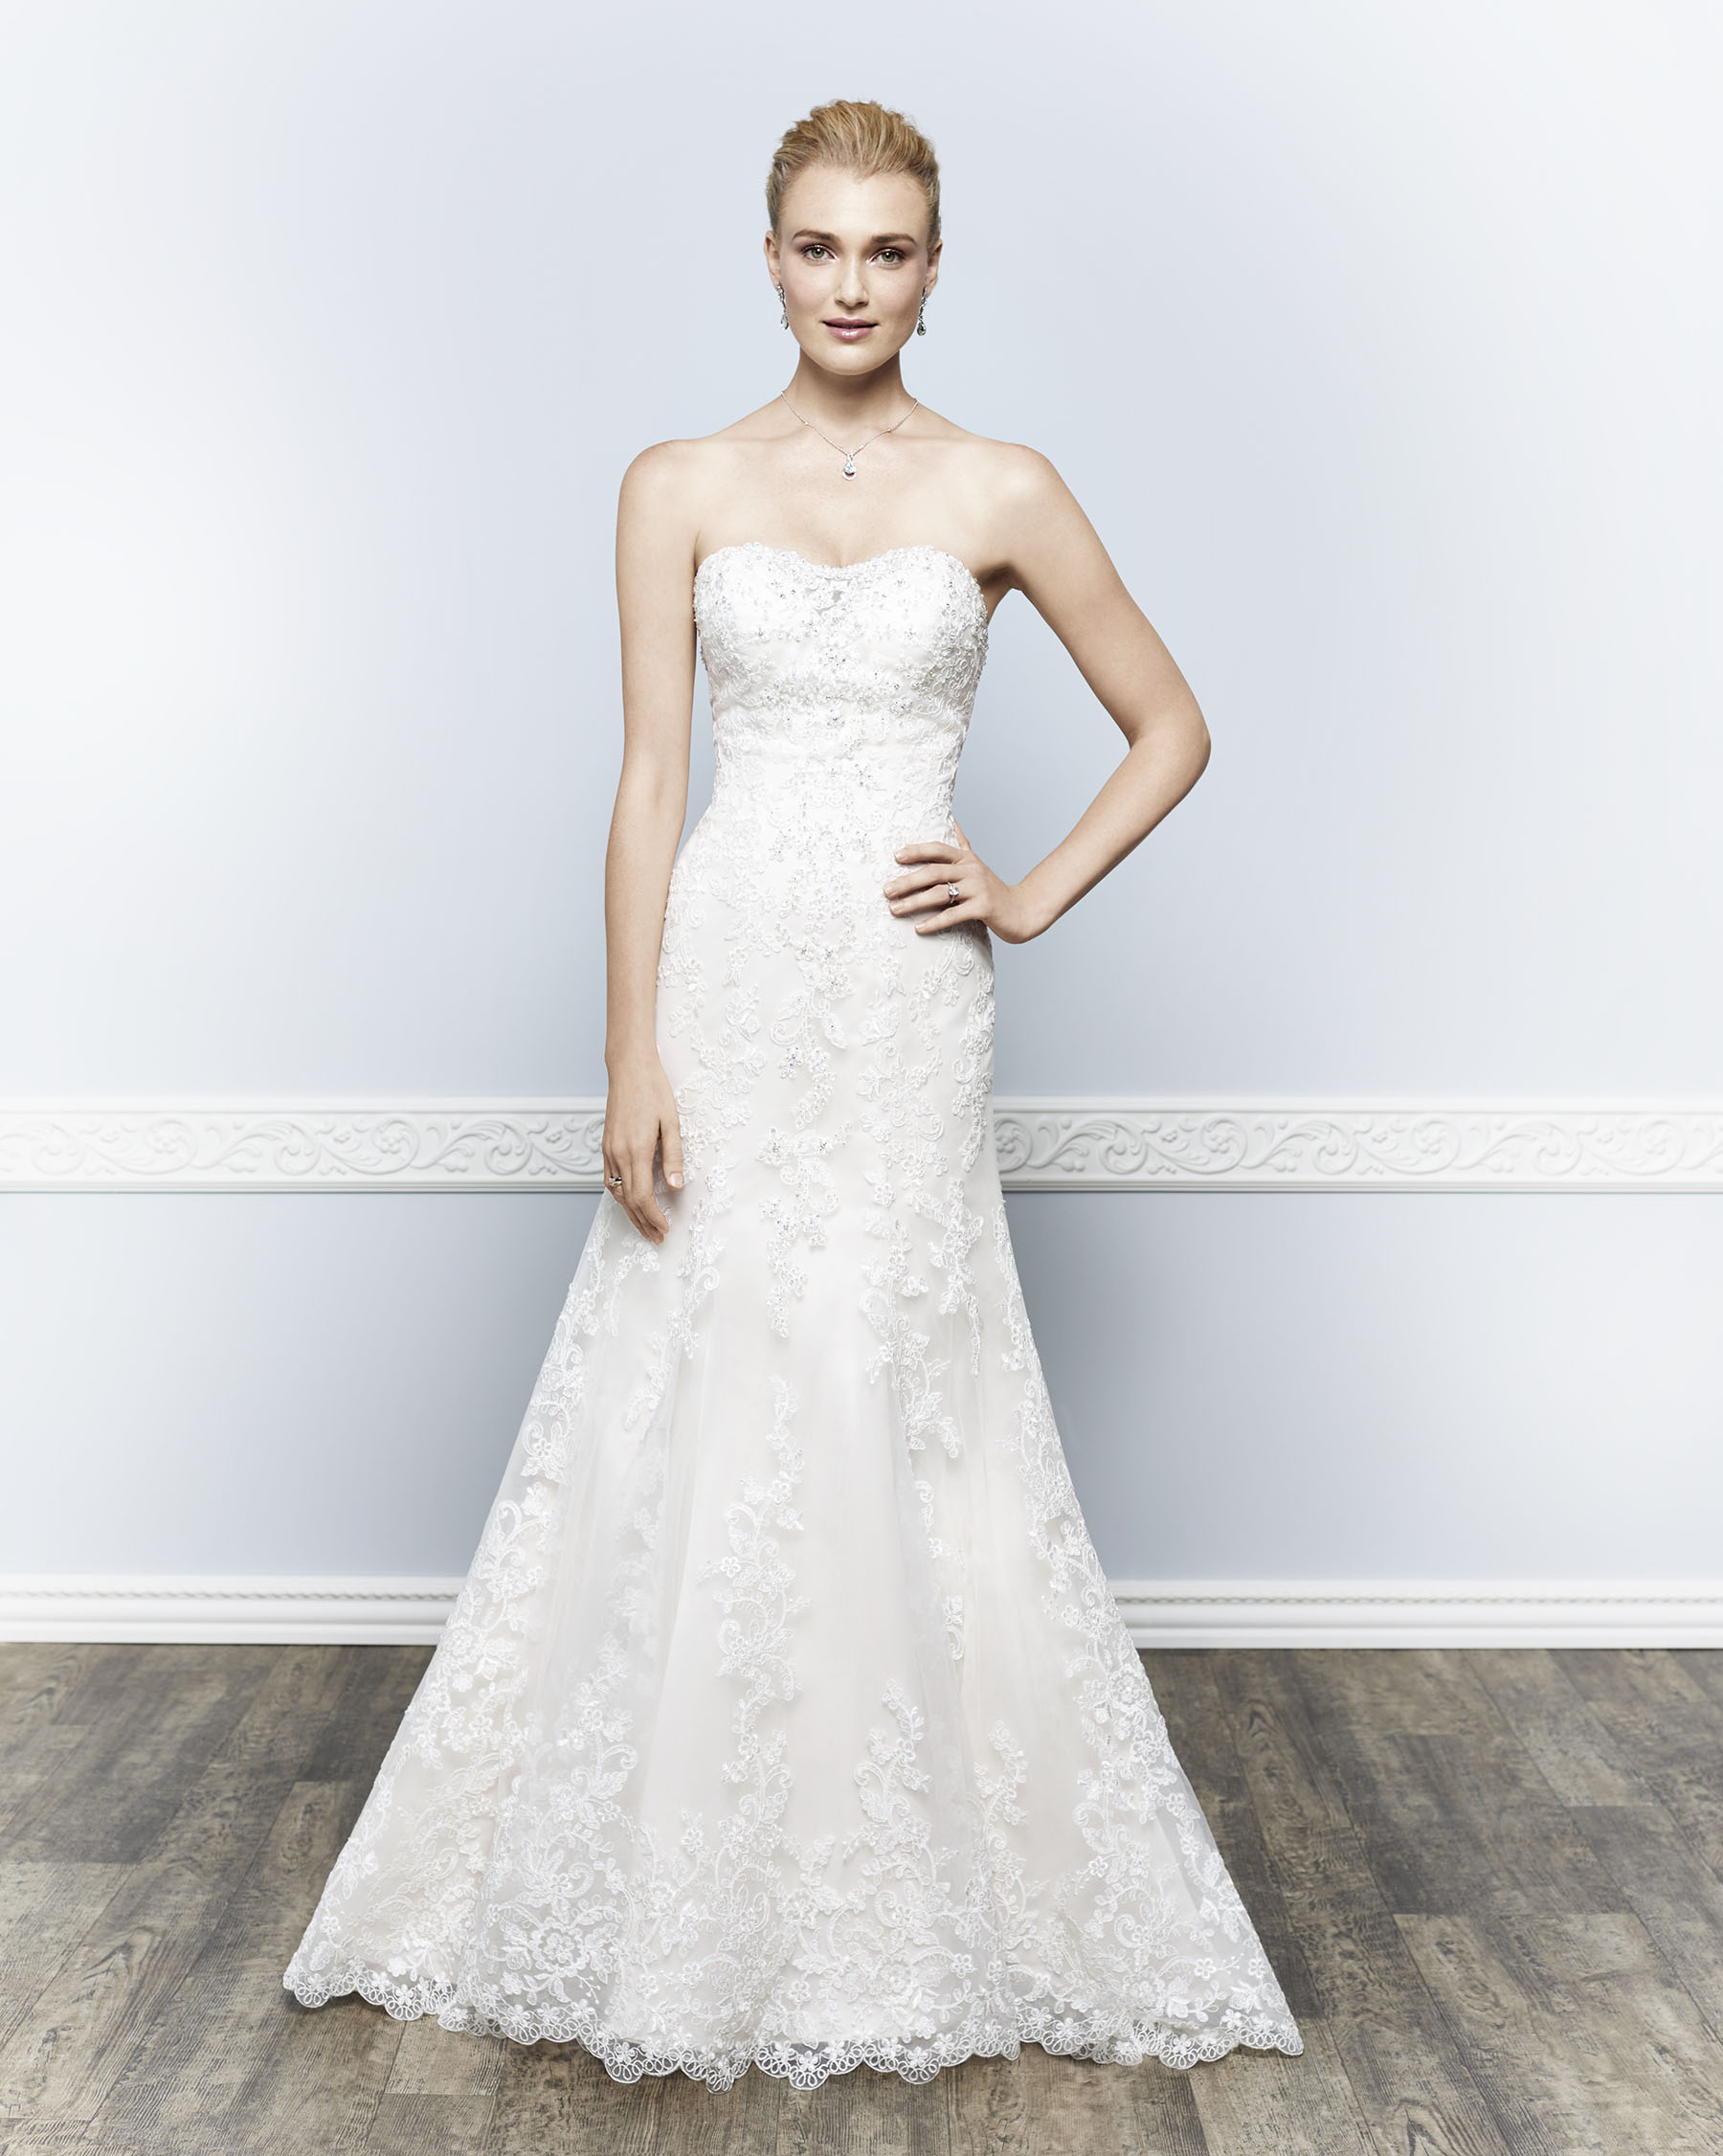 Bridal Dresses Martellen S Dress Amp Bridal Boutique